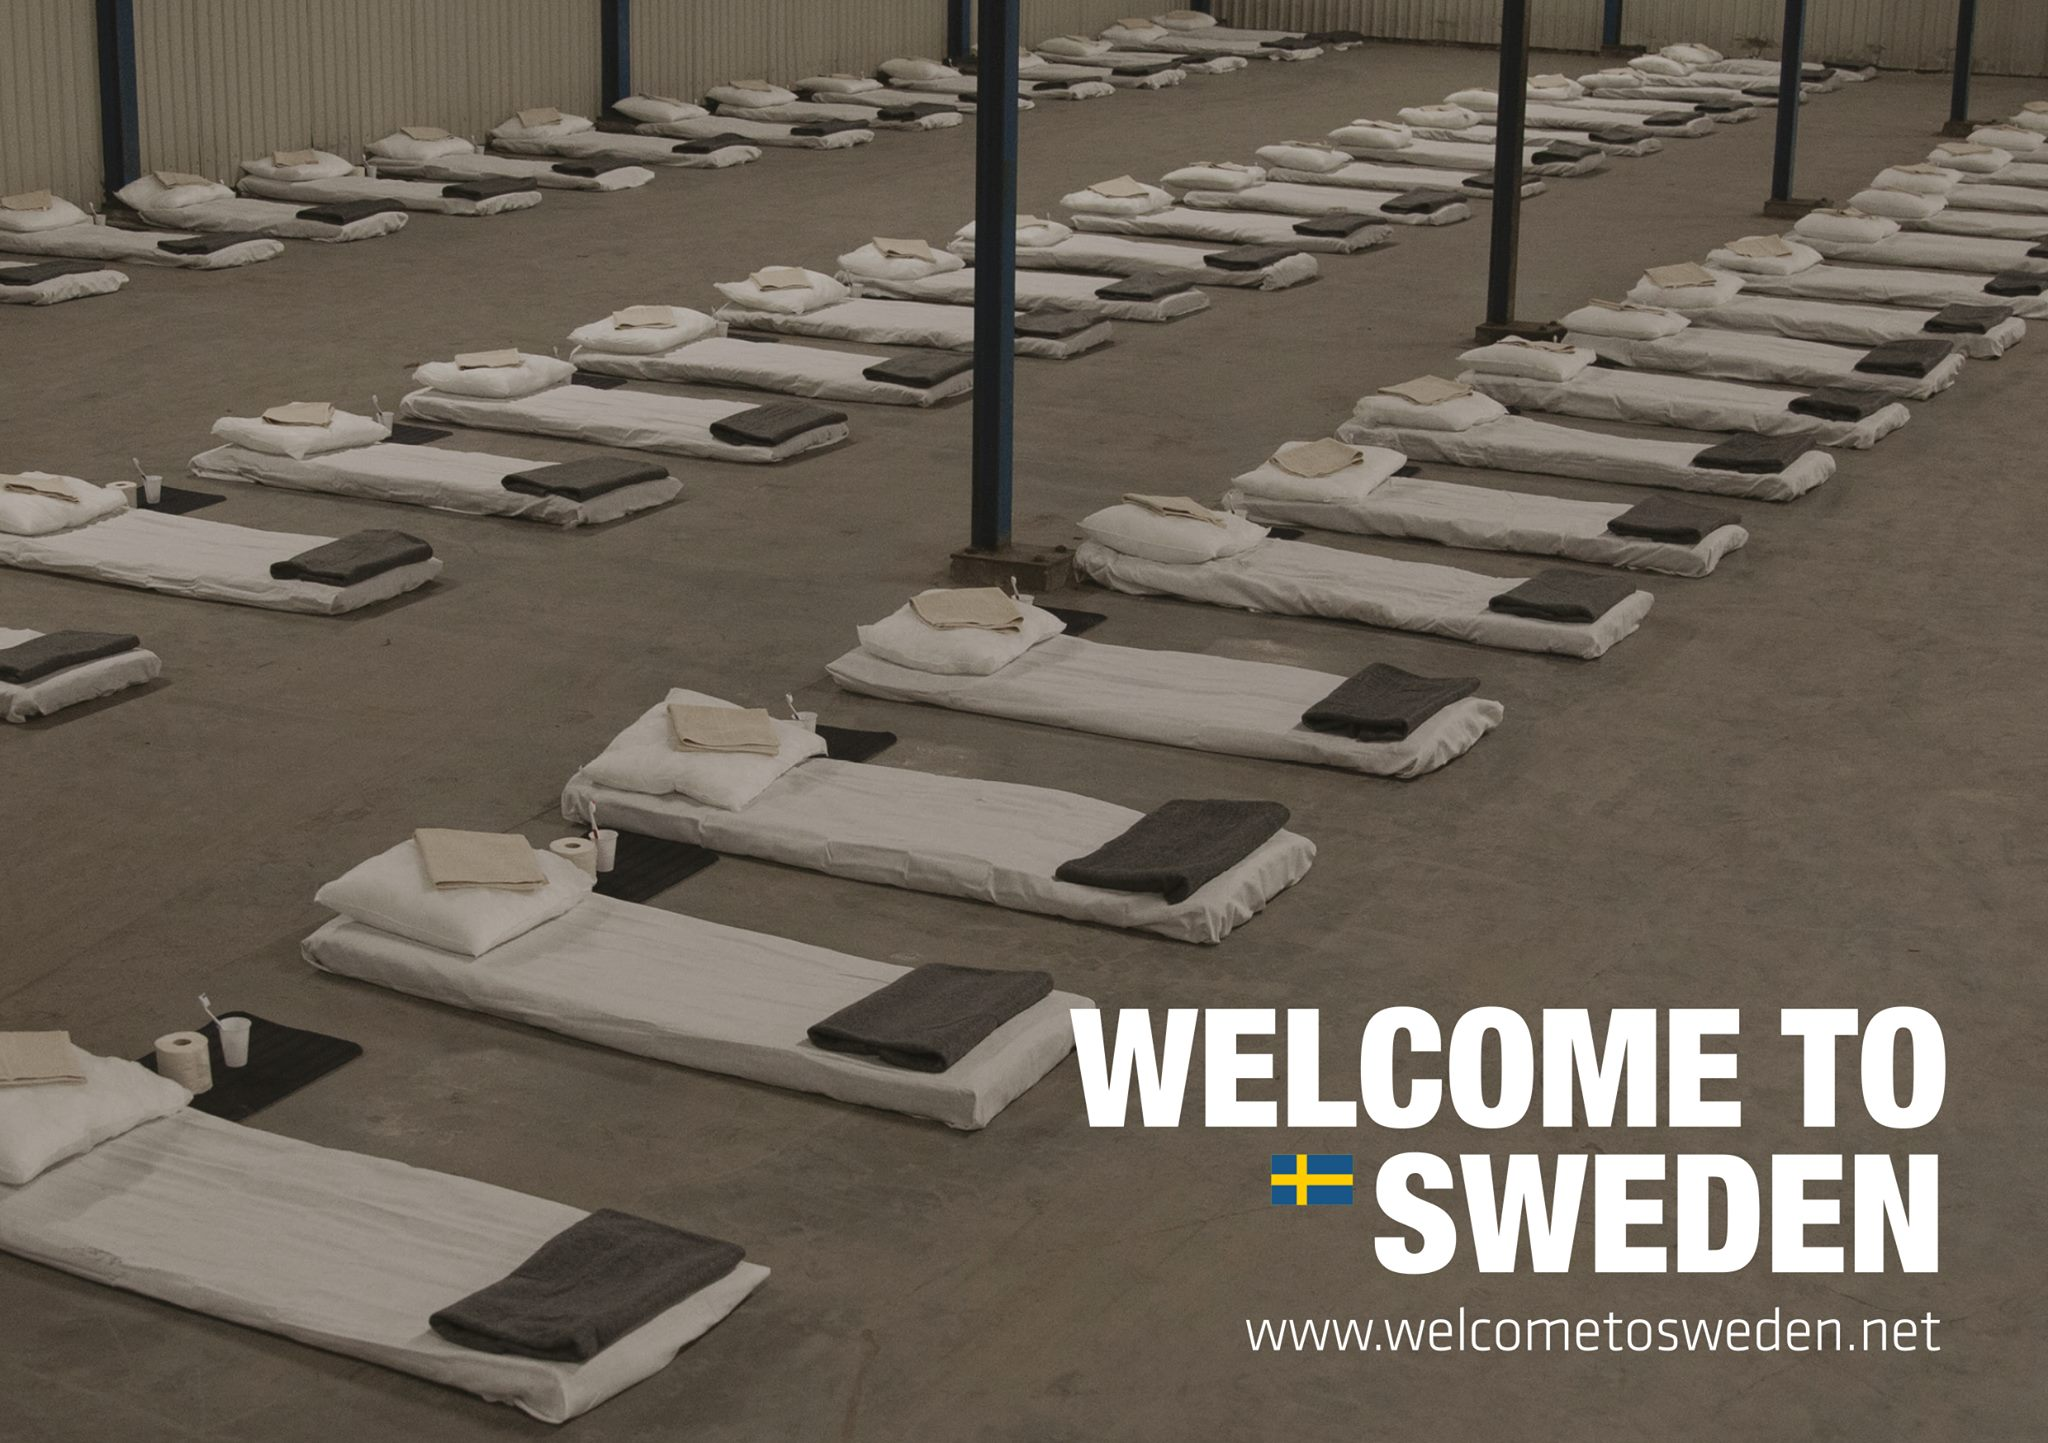 welcometosweden